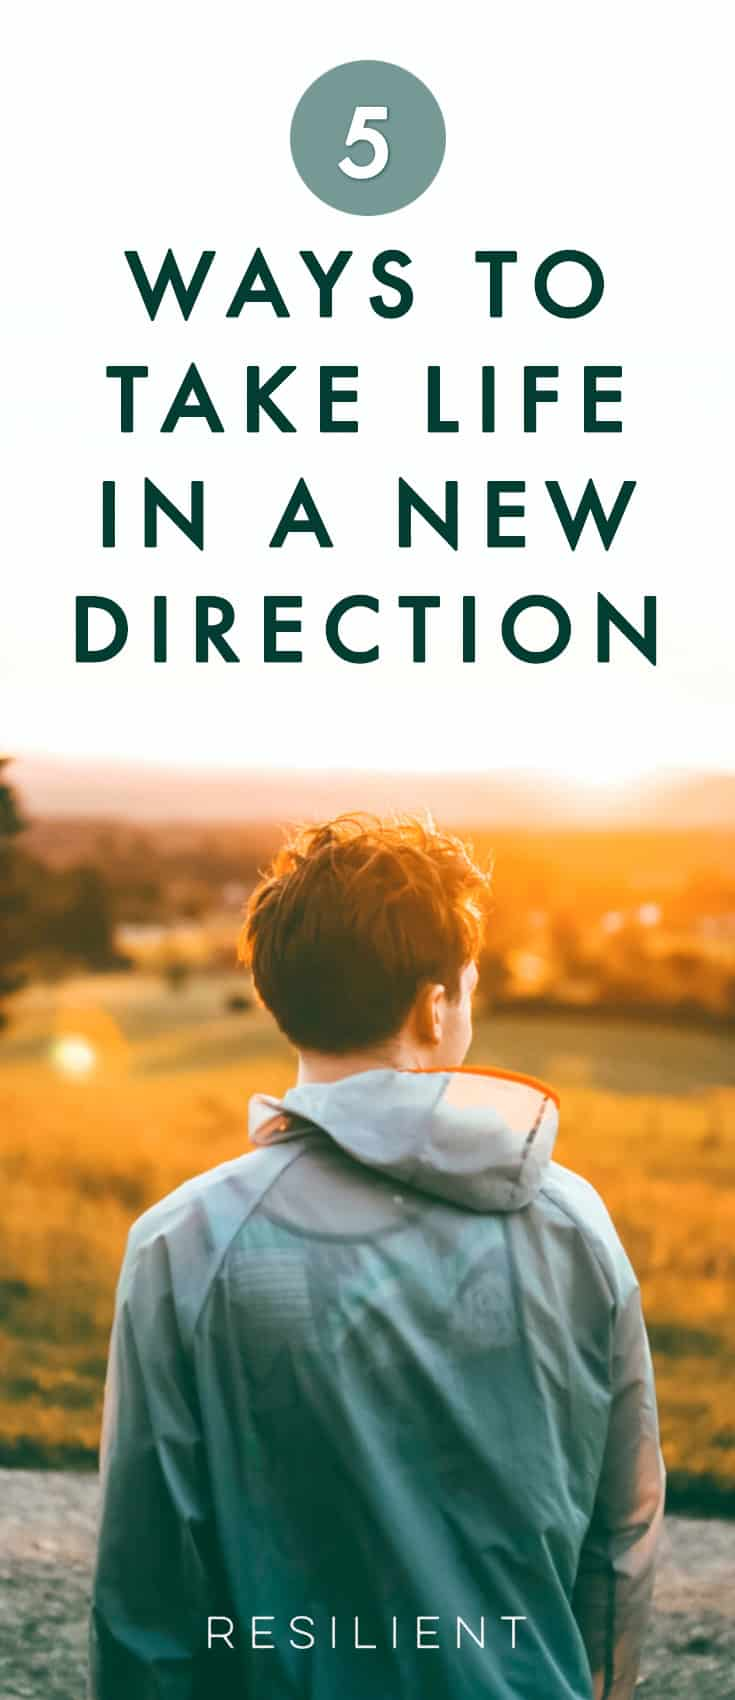 There comes a time in many people's lives when they feel stuck and unhappy. While they long for a more fulfilling path, they don't know how to take a new direction because existing obligations and habits intrude. Learn 5 ways to take life in a new direction.